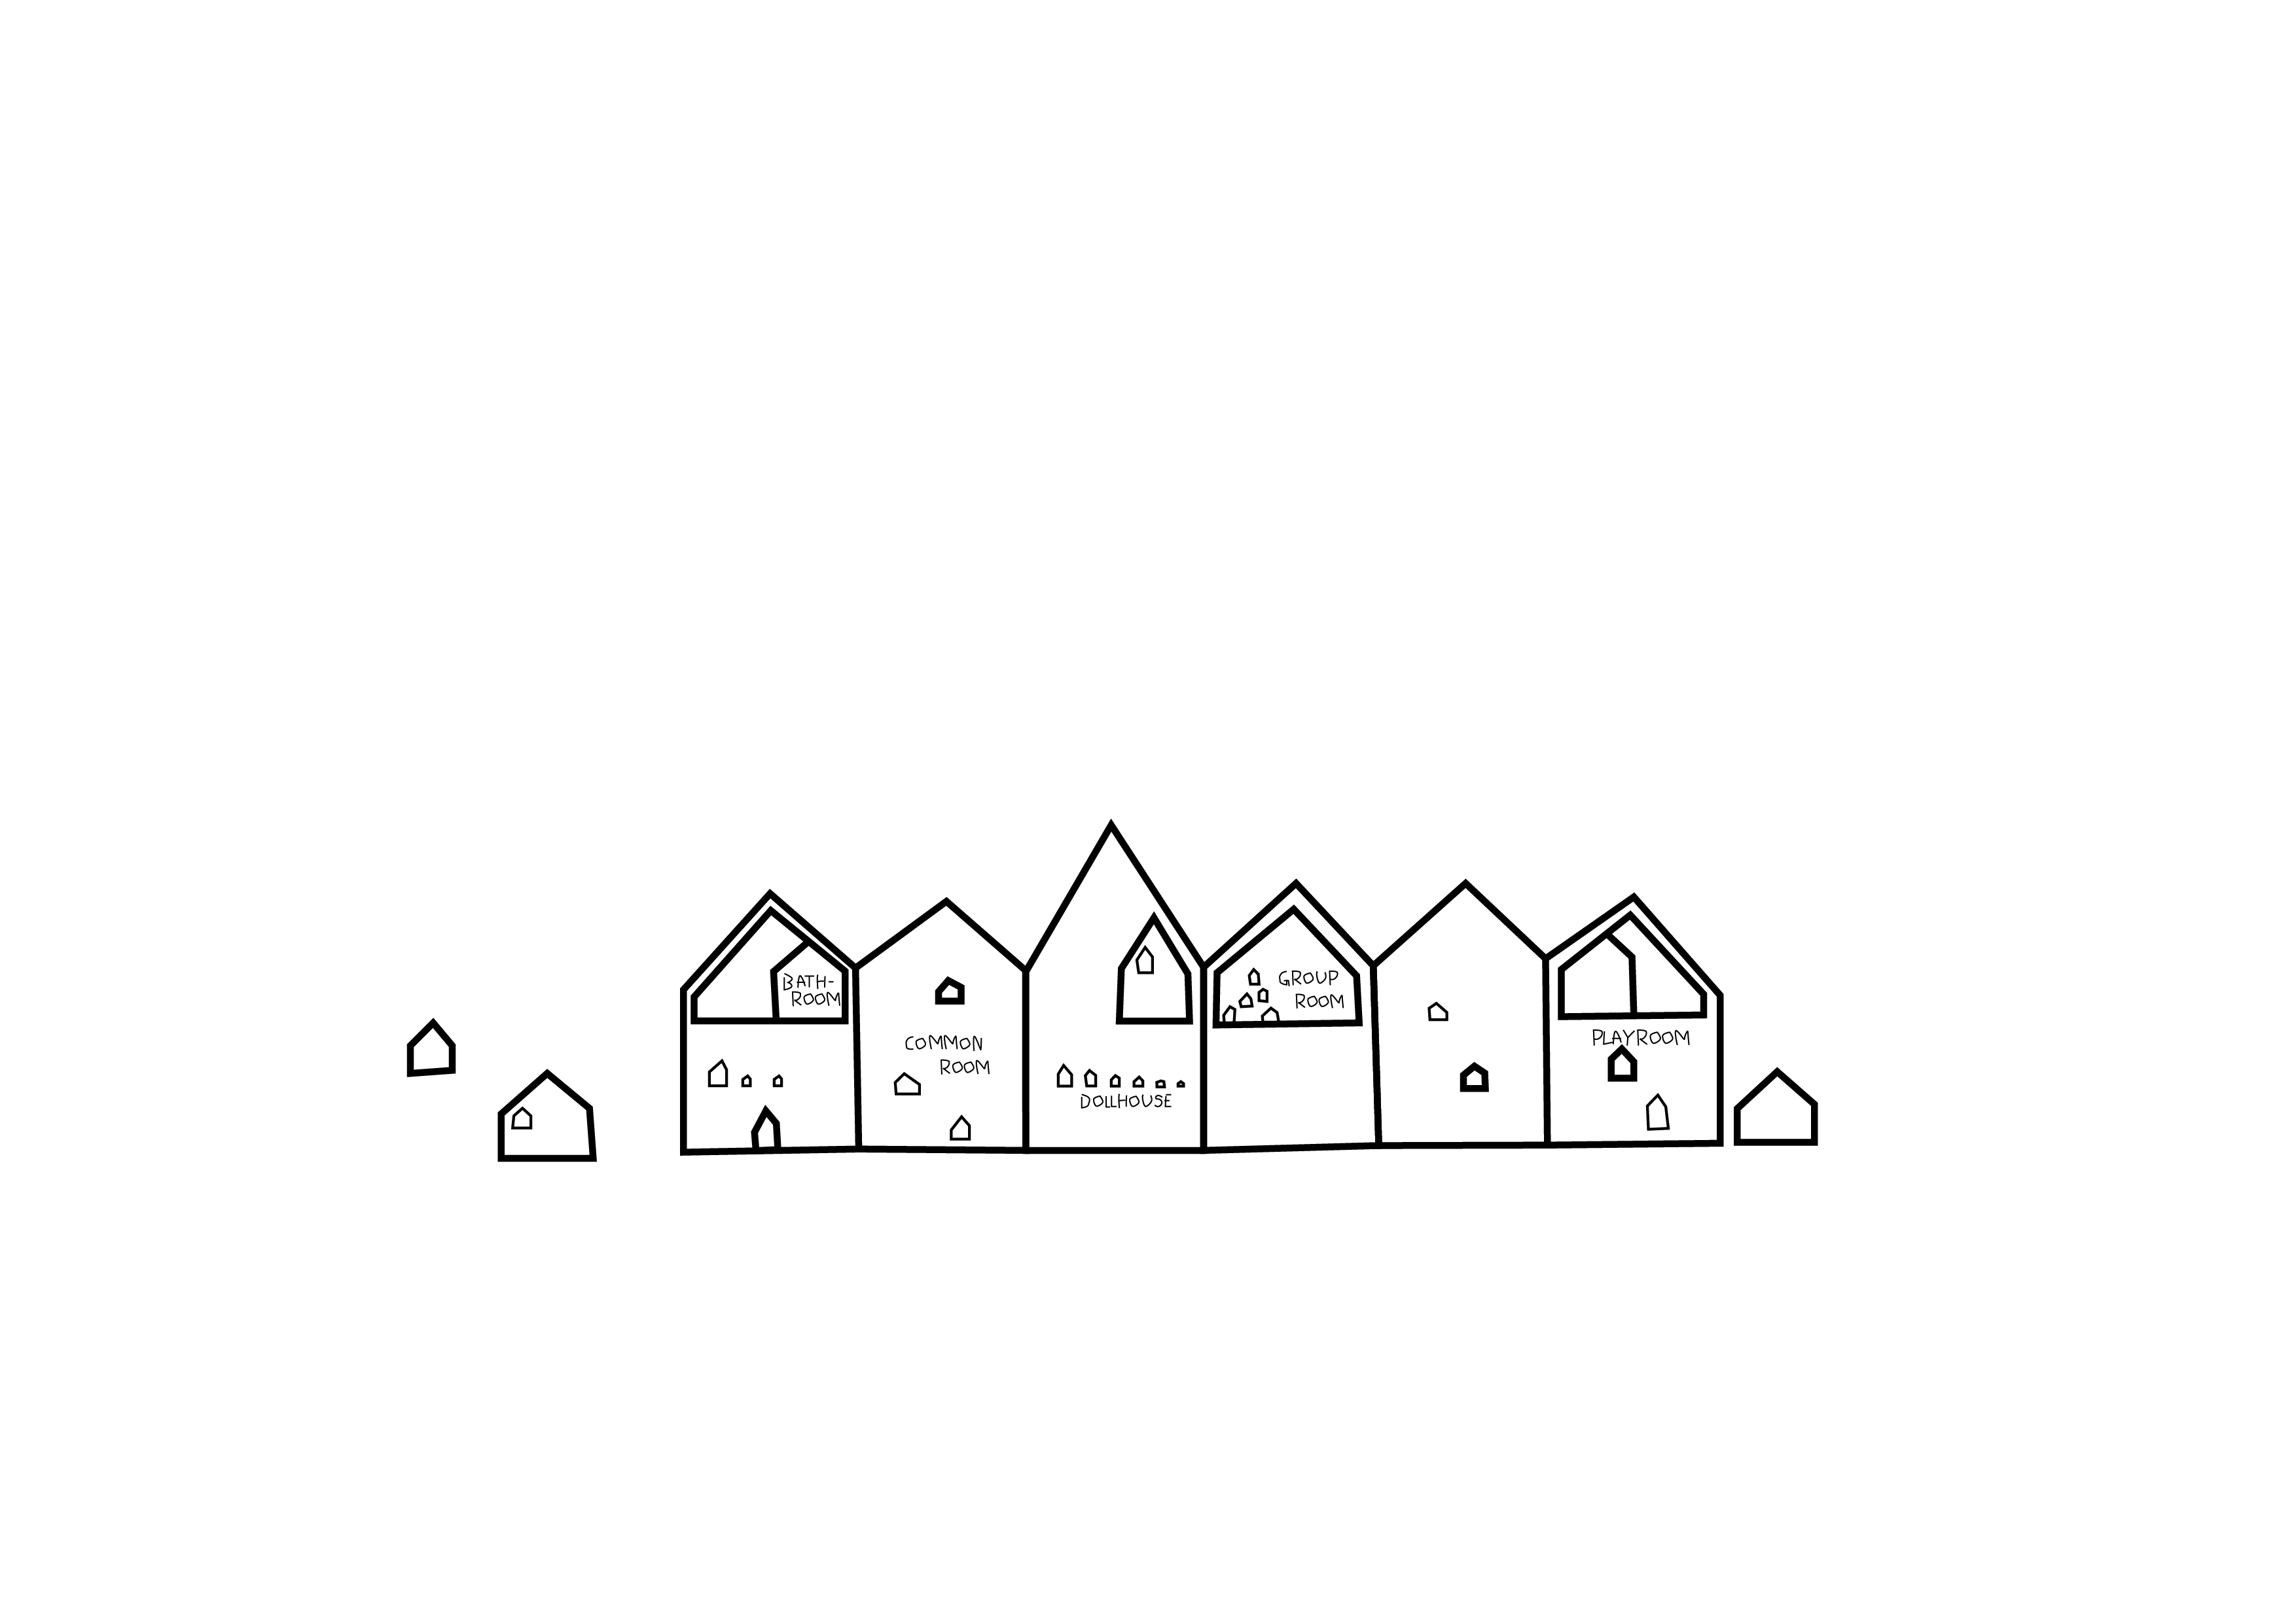 Frederiksvej Kindergarten_diagram 05_a house within a house - from large buildings to small doll houses_credit COBE